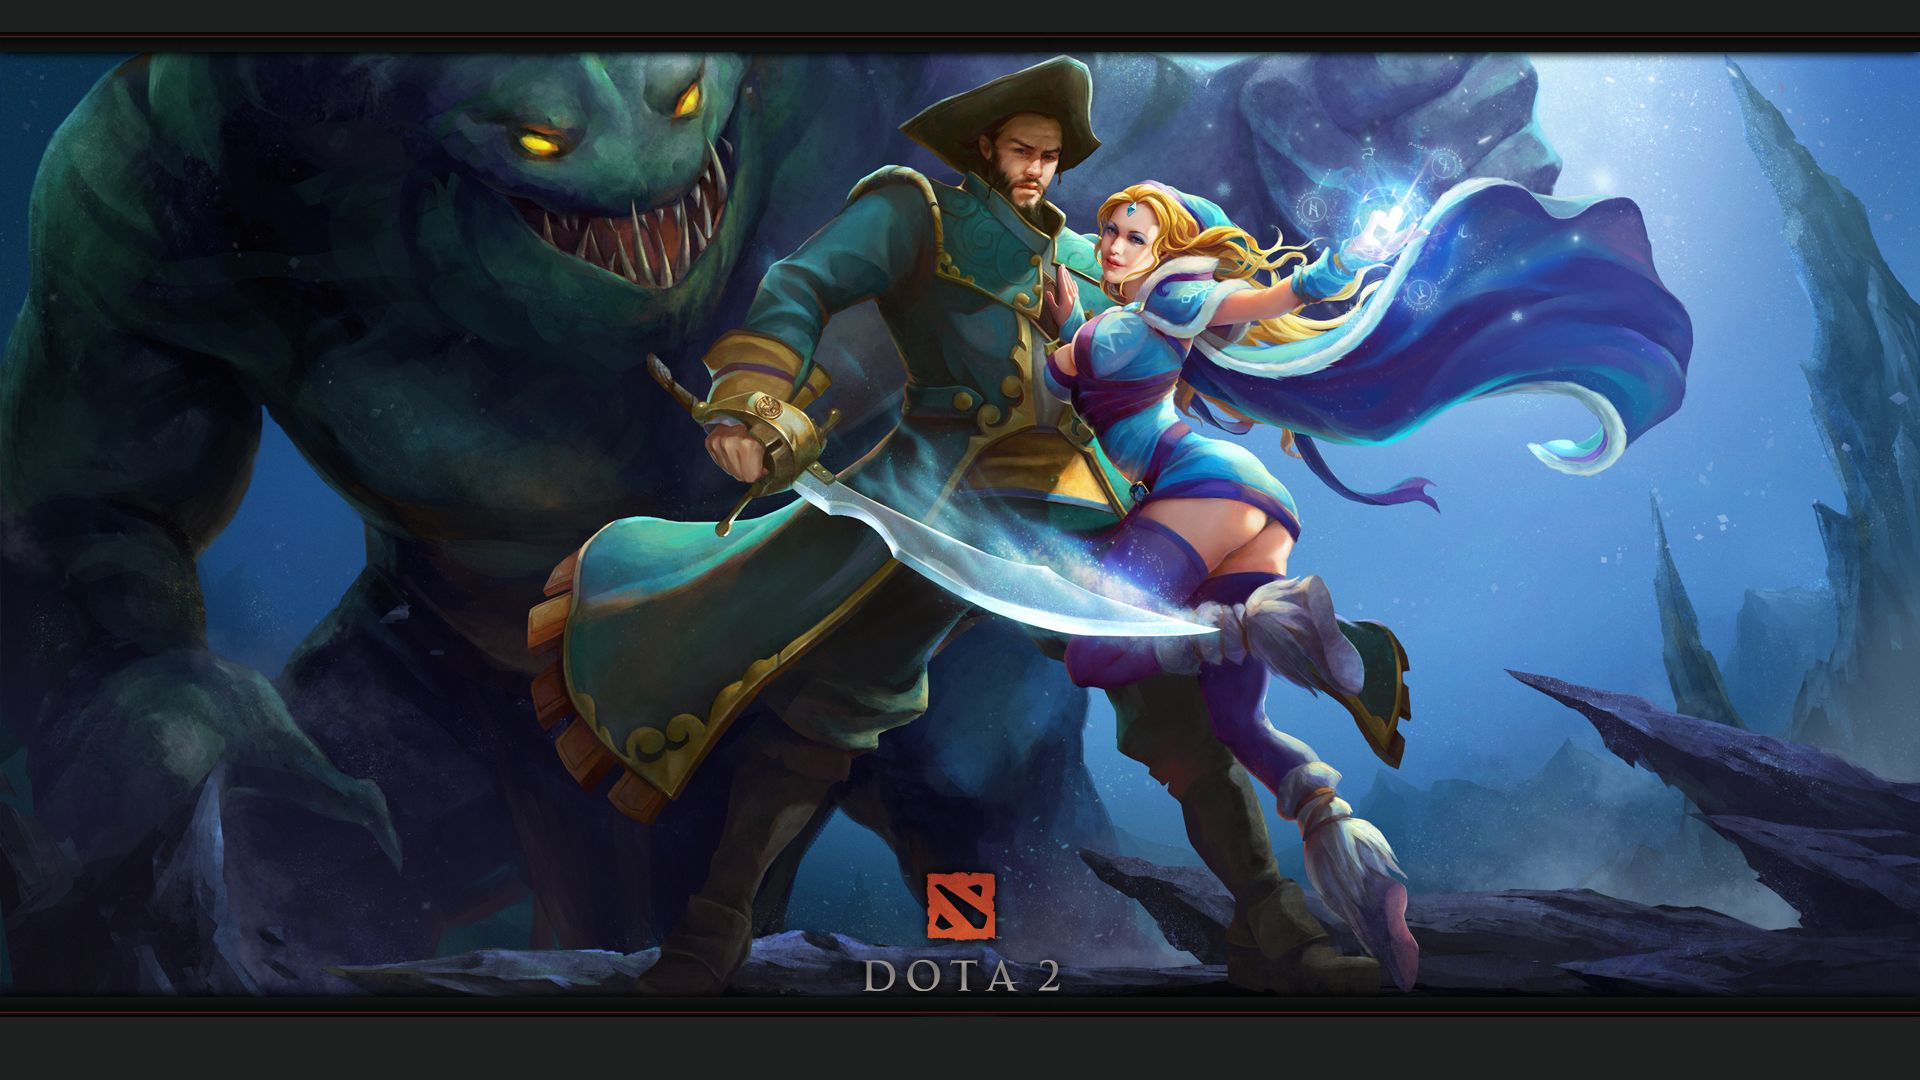 Click below link to download Dota 2 game: click to download